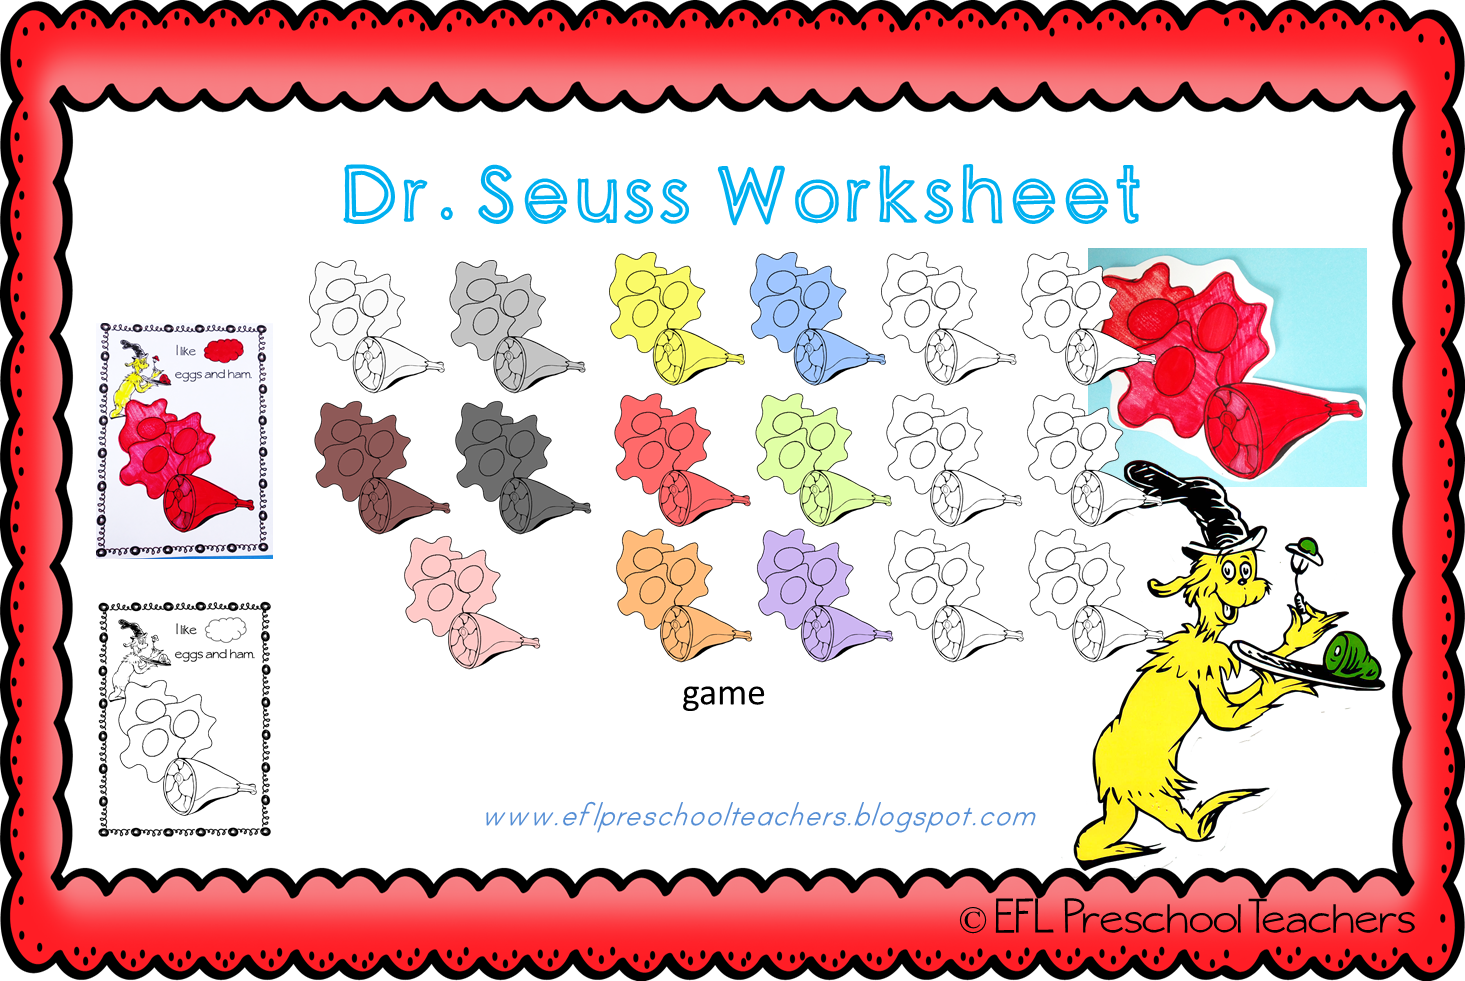 Esl Efl Preschool Teachers Dr Seuss Worksheets For Ell